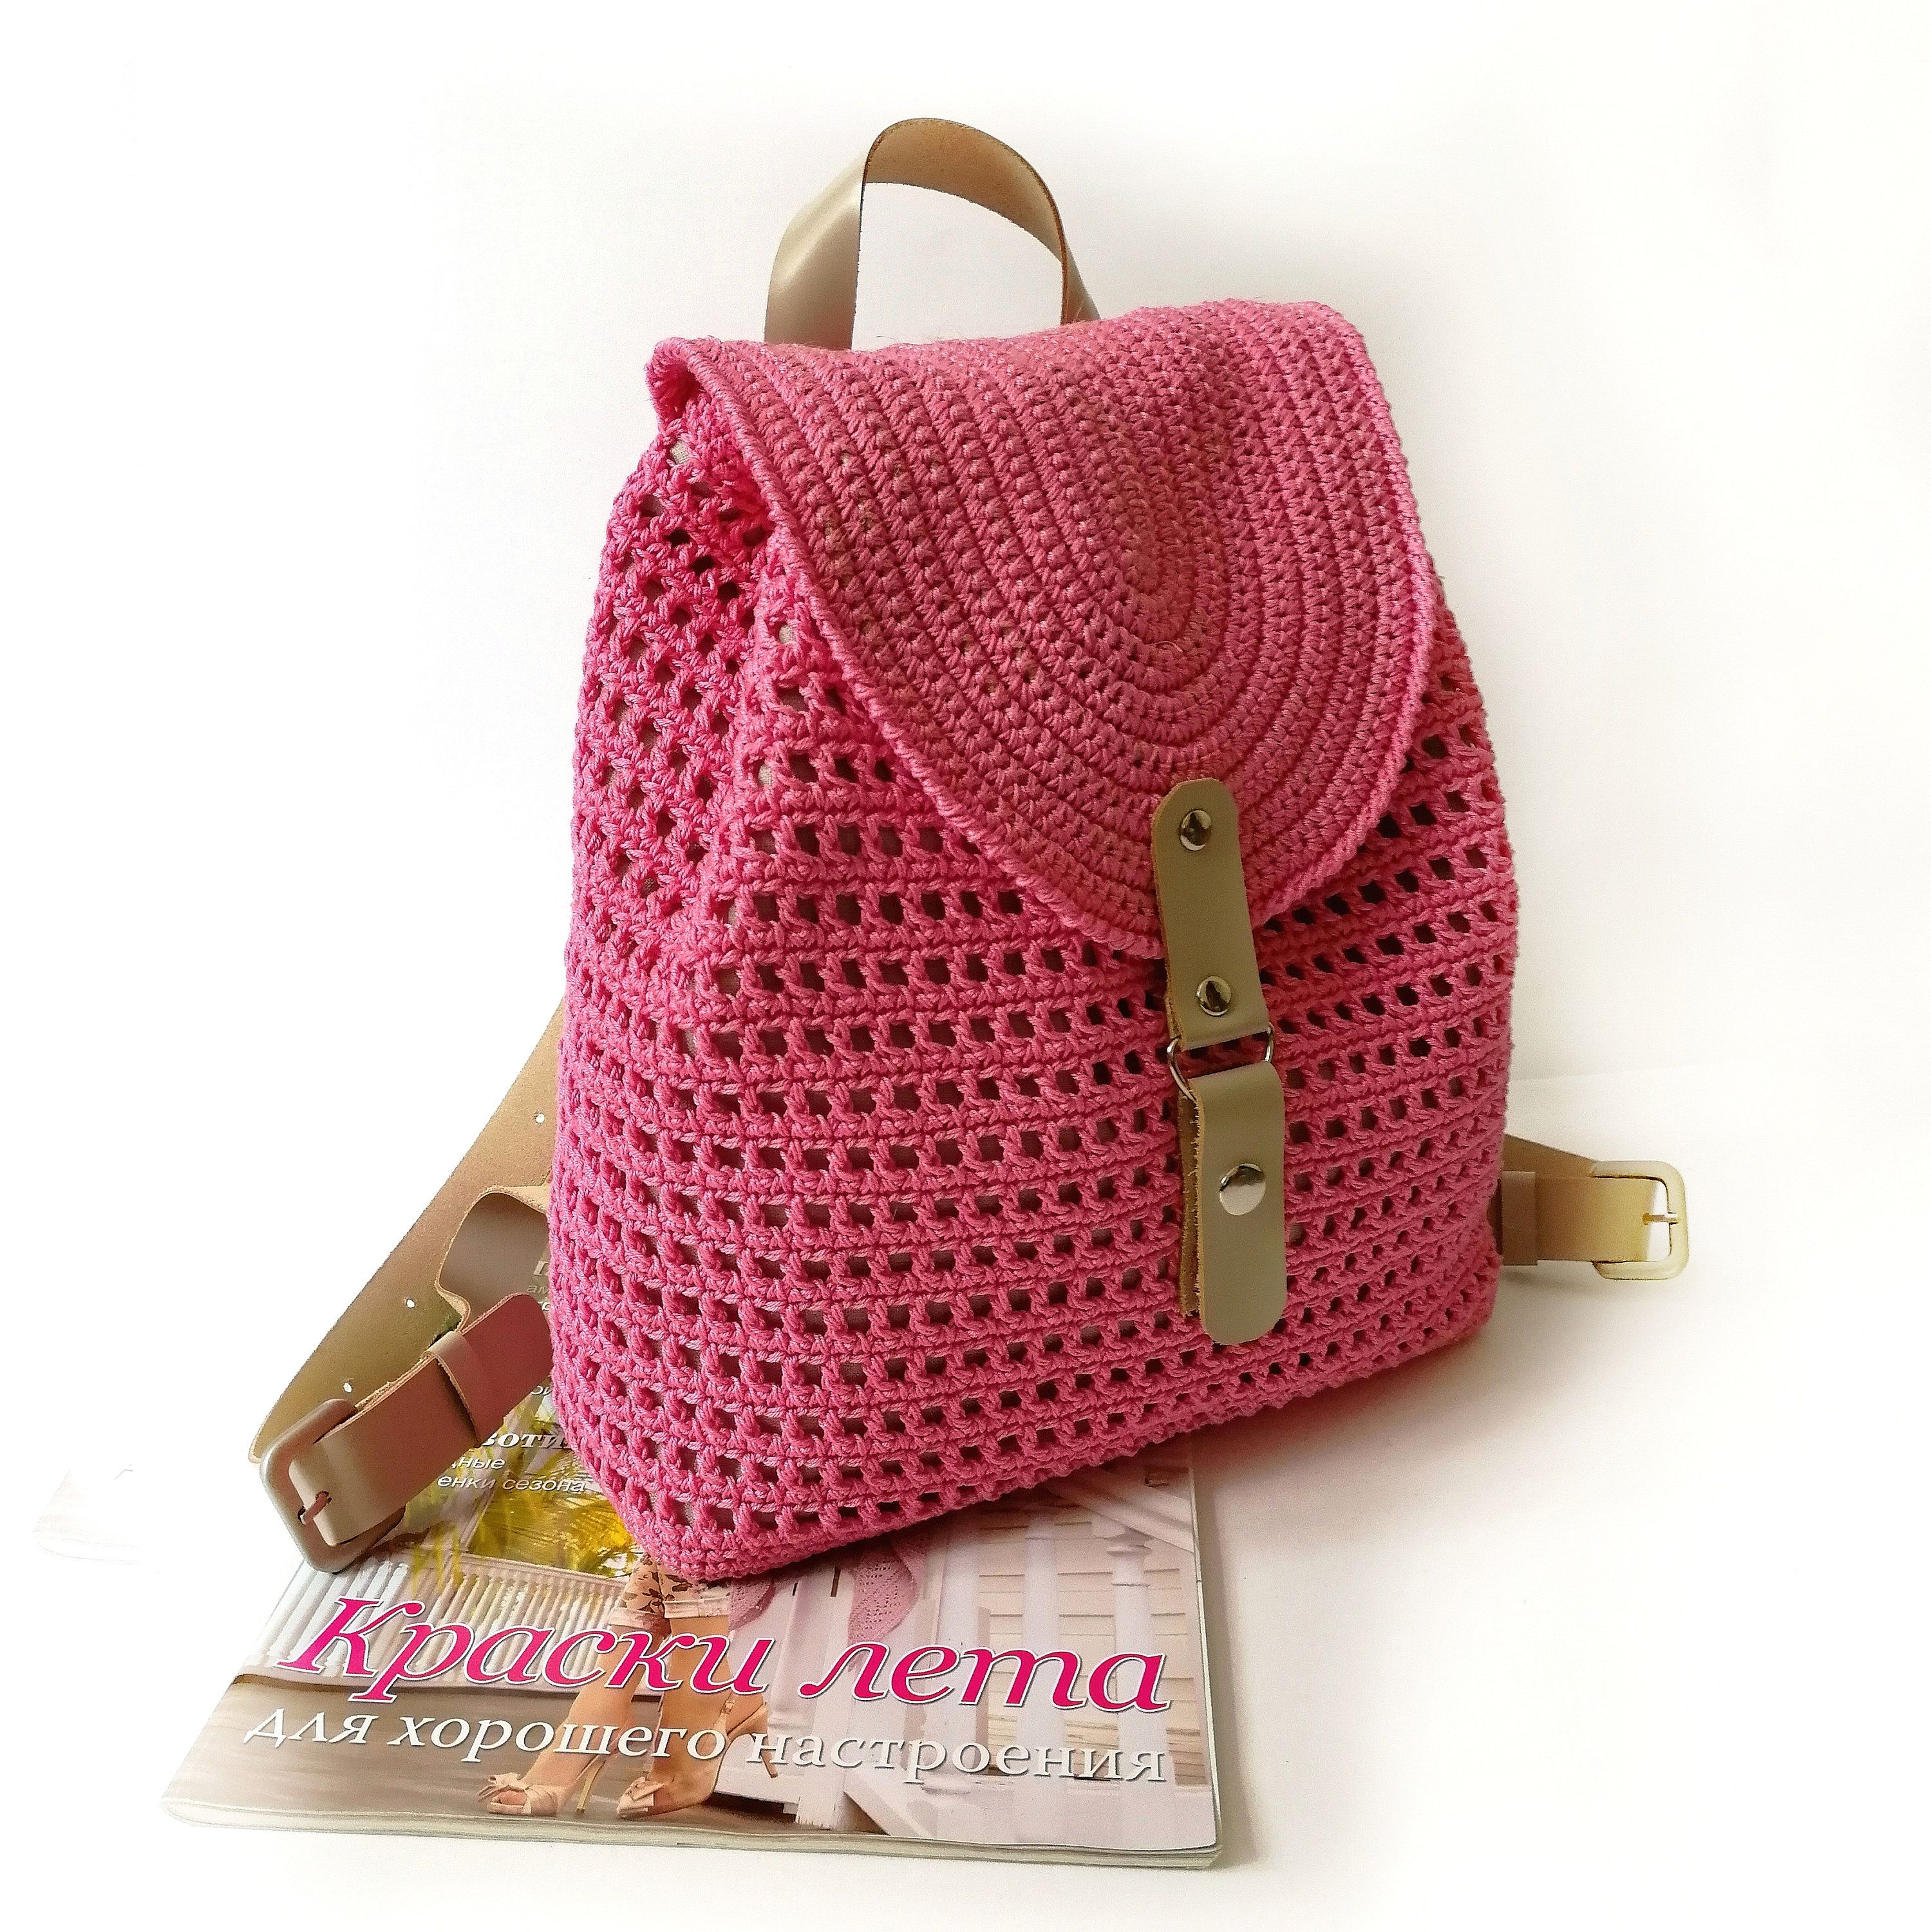 Handmade Crochet Backpack for Women's, Crochet Natural Cotton Backpack with Genuige Leather Strap, Fashion City Bag, Gift for Women